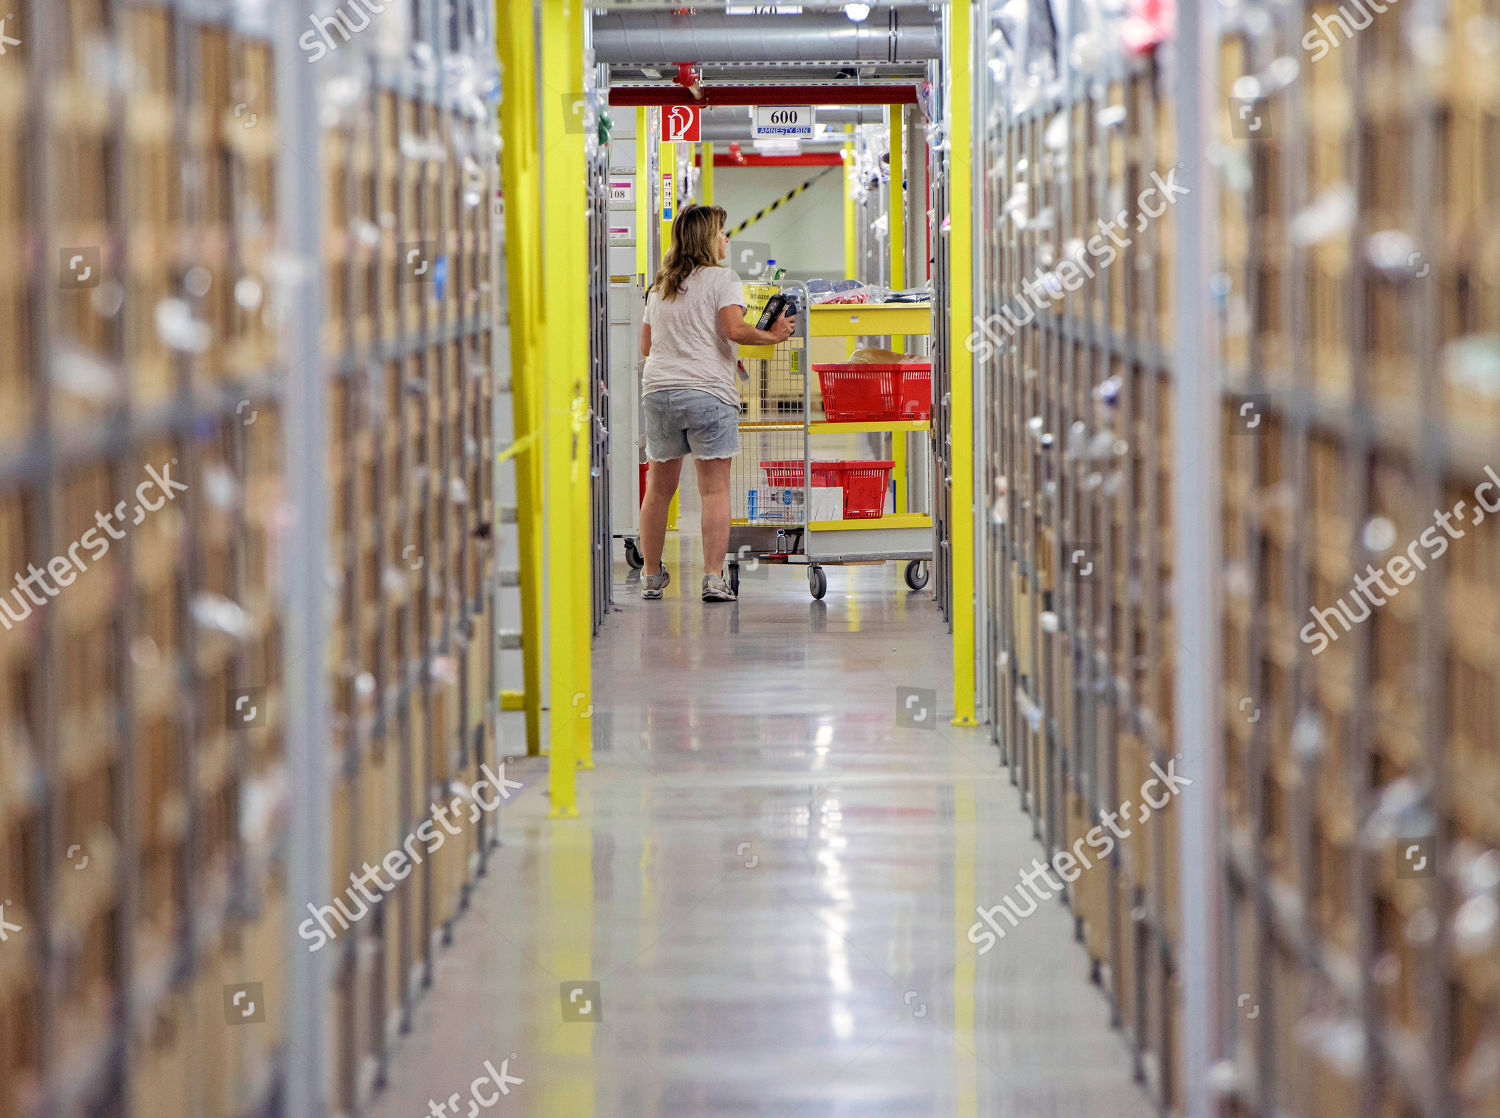 Woman Works Distribution Center Online Retailer Amazon Editorial